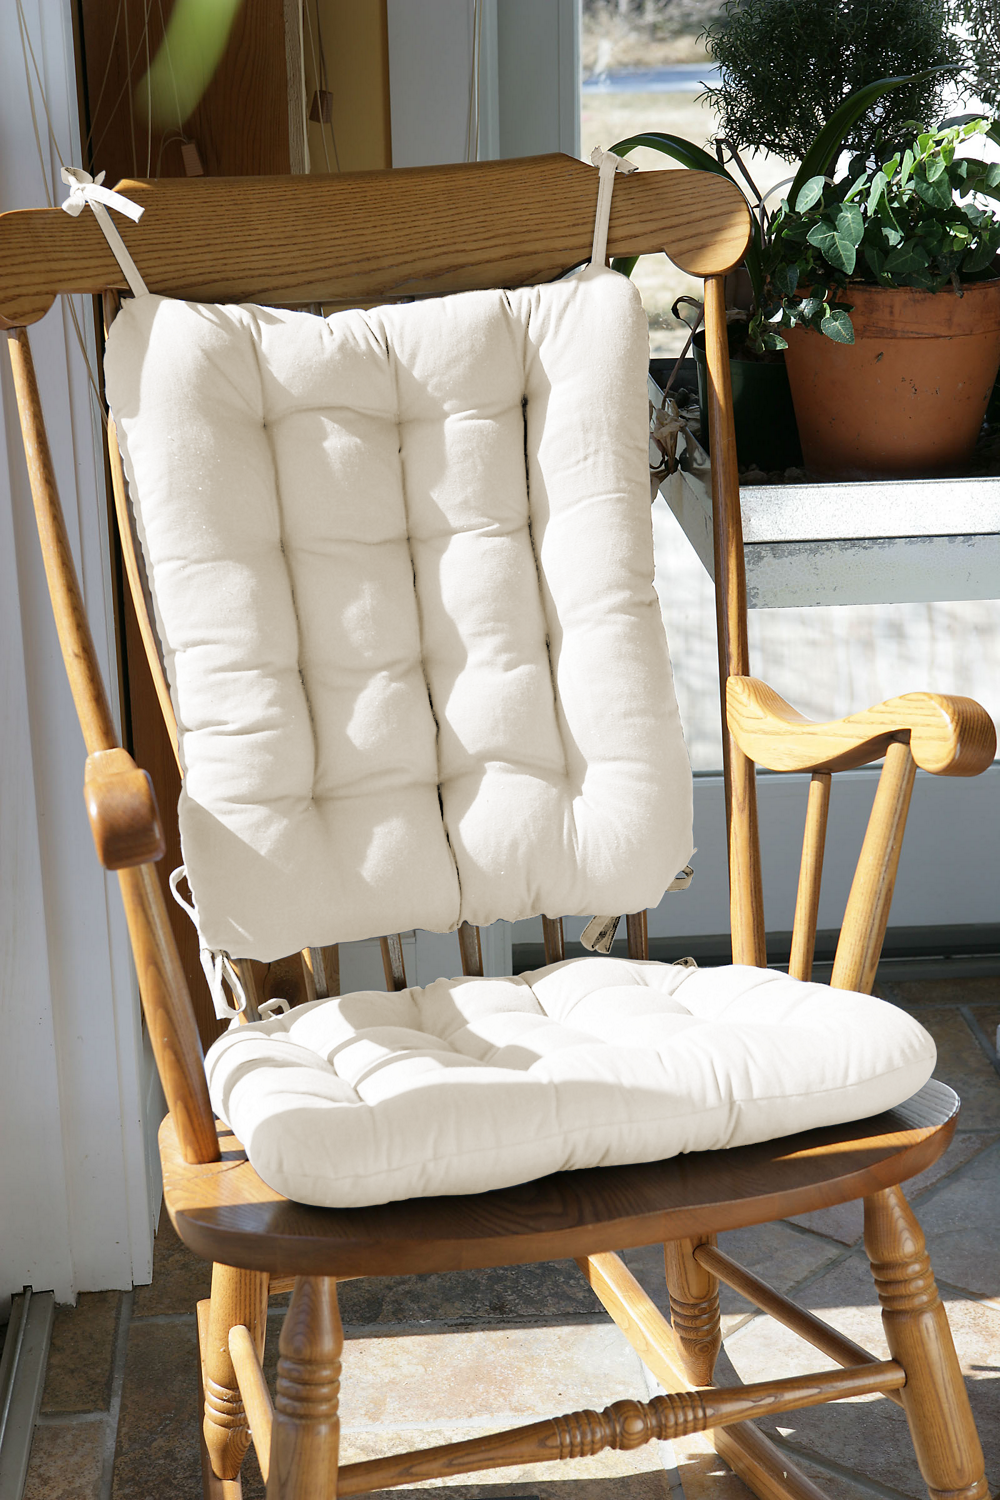 Make Your Seating More Comfortable With Our Chair Pads And Cushions. Shop  For Rocking Chair Pads And Couch Covers In Beautiful Solids And Patterns.